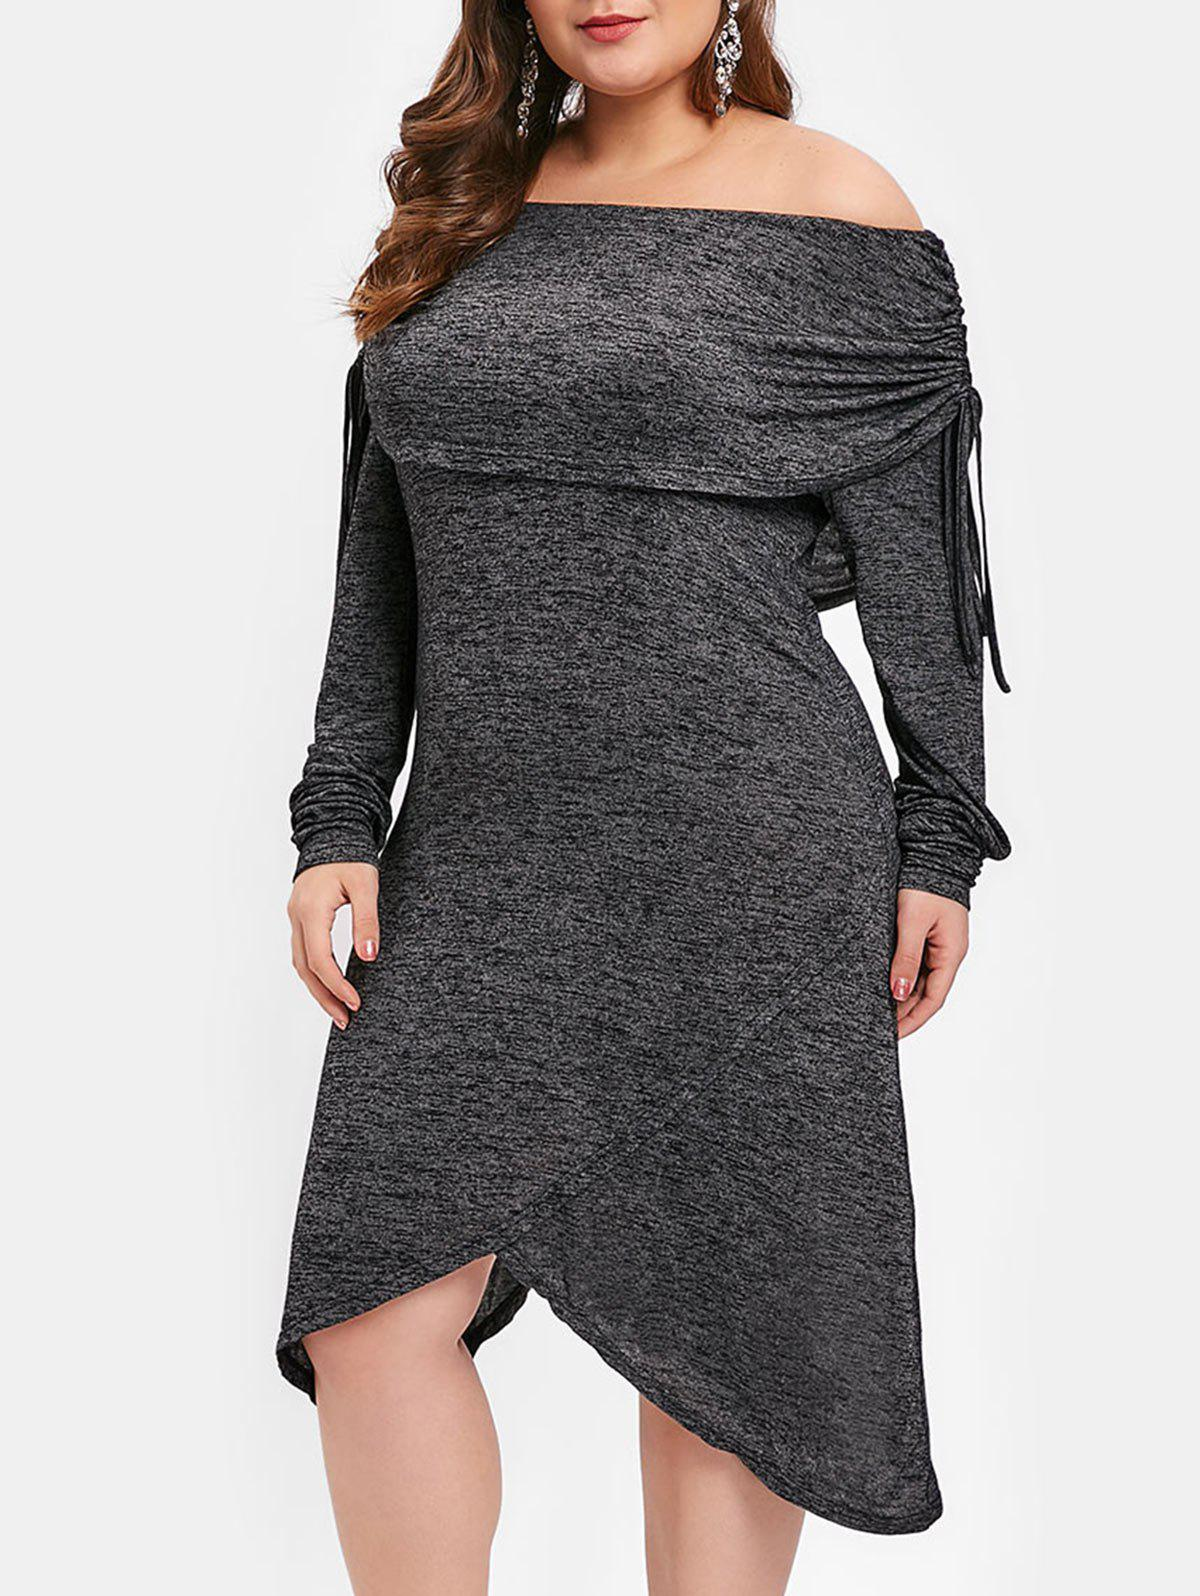 1b4bed8c10 44% OFF] Plus Size Cinched Long Sleeves Asymmetric Dress | Rosegal